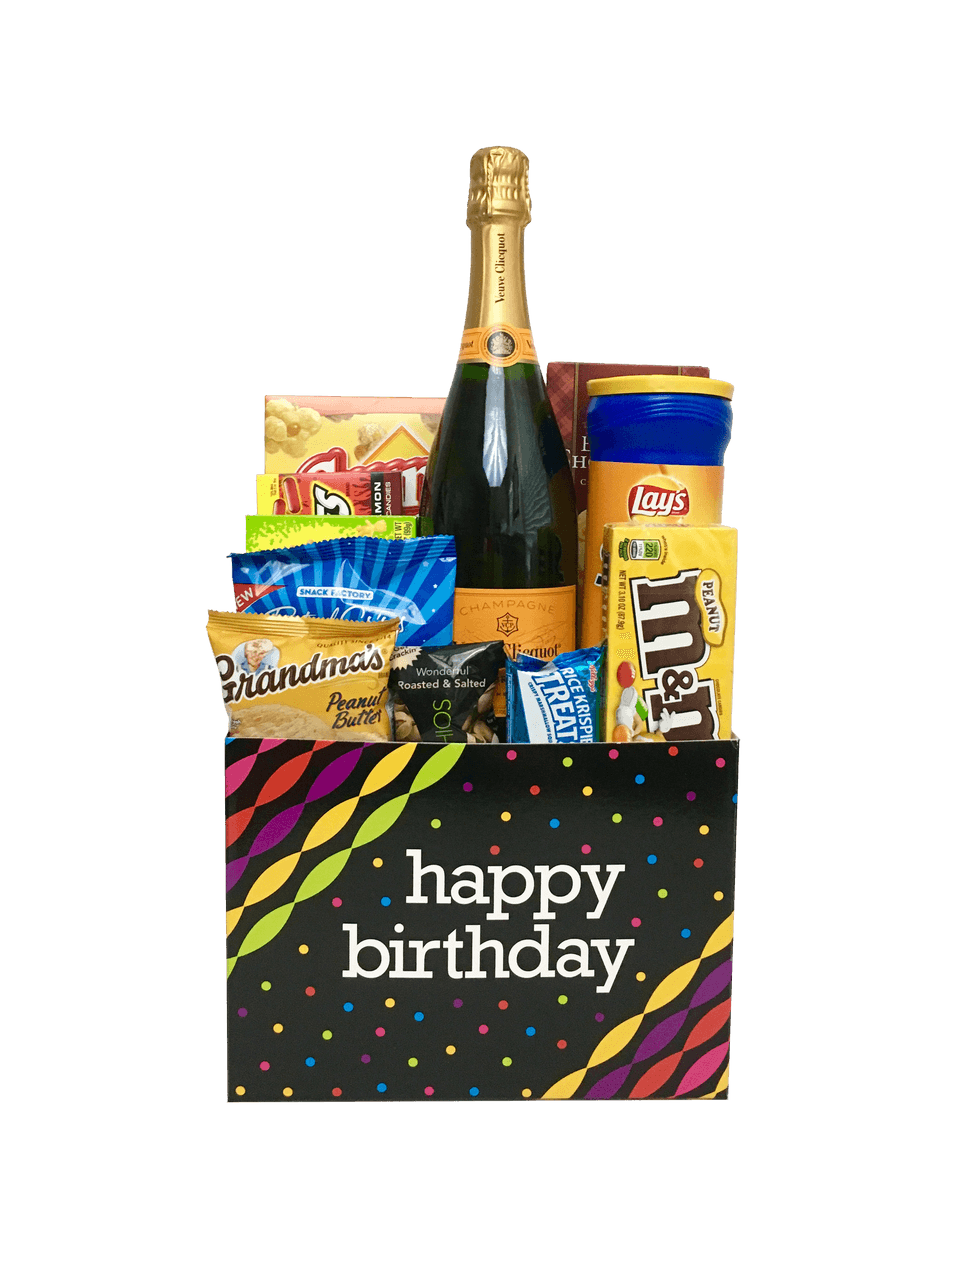 Employee Appreciation Champagne Life Gift Baskets